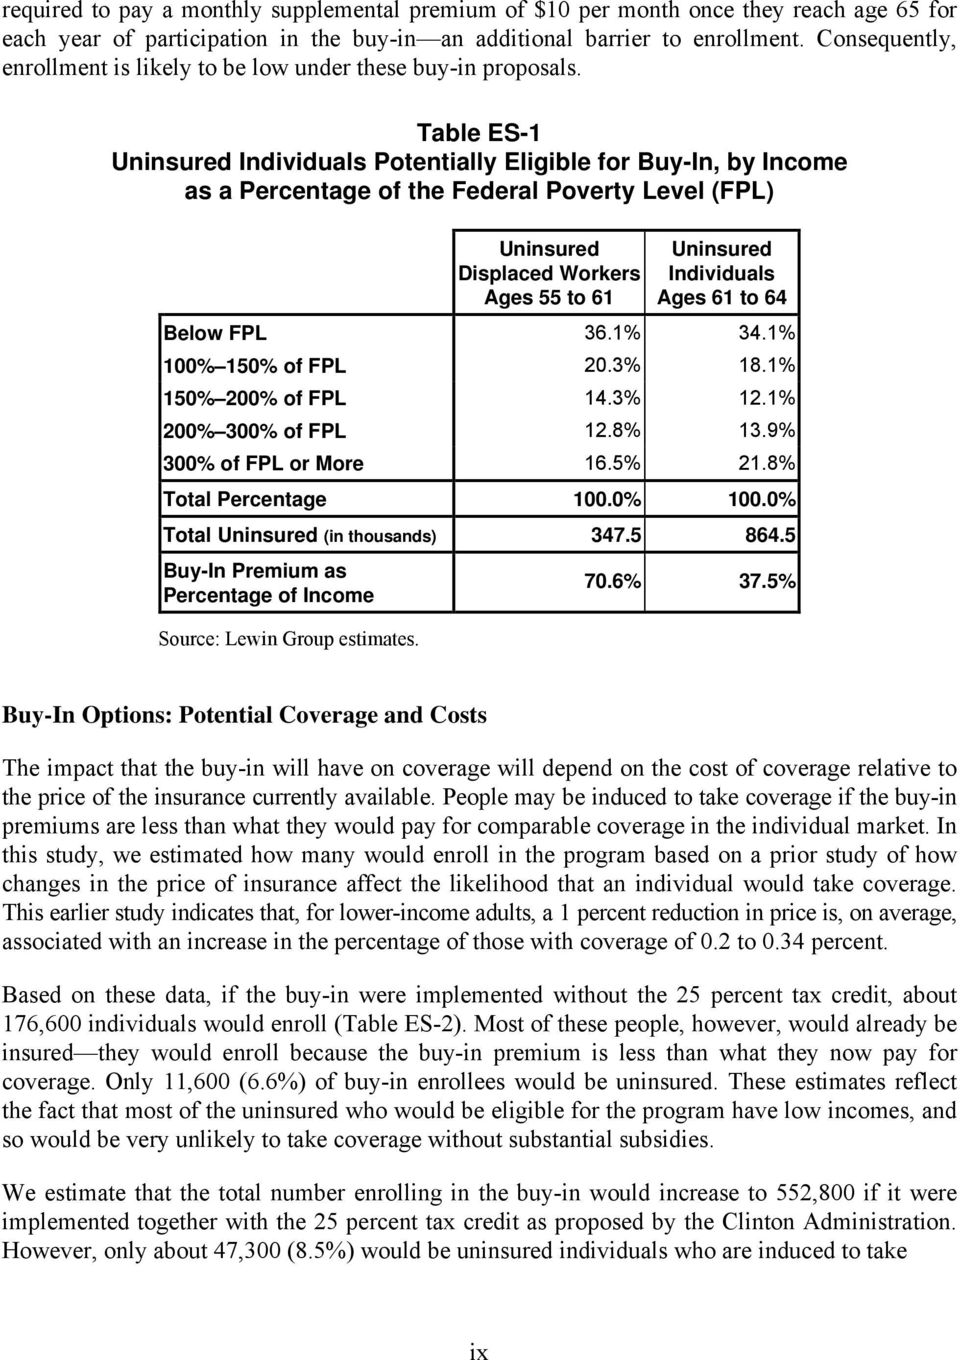 Table ES-1 Uninsured Individuals Potentially Eligible for Buy-In, by Income as a Percentage of the Federal Poverty Level (FPL) Uninsured Displaced Workers Ages 55 to 61 Uninsured Individuals Ages 61